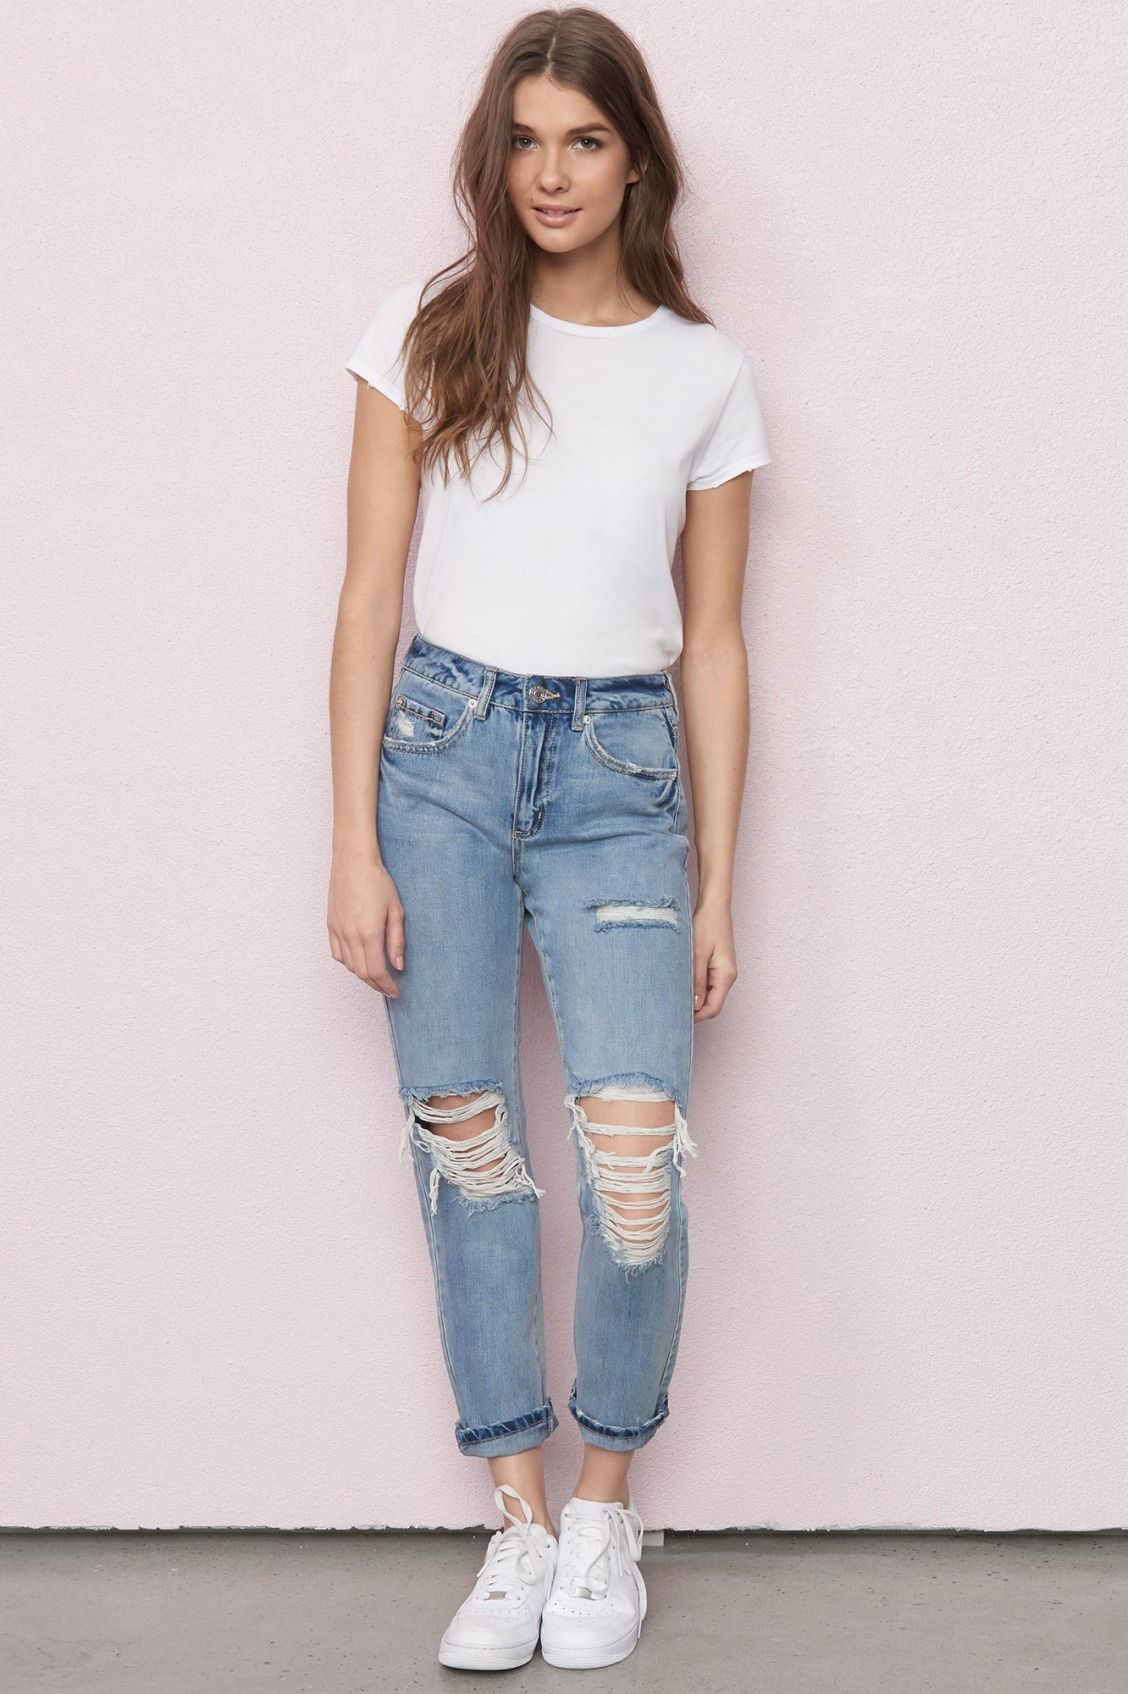 fac9bc5f Dakota Blue Mom Jean | Summer in 2019 | Ripped jeans outfit, Mom ...